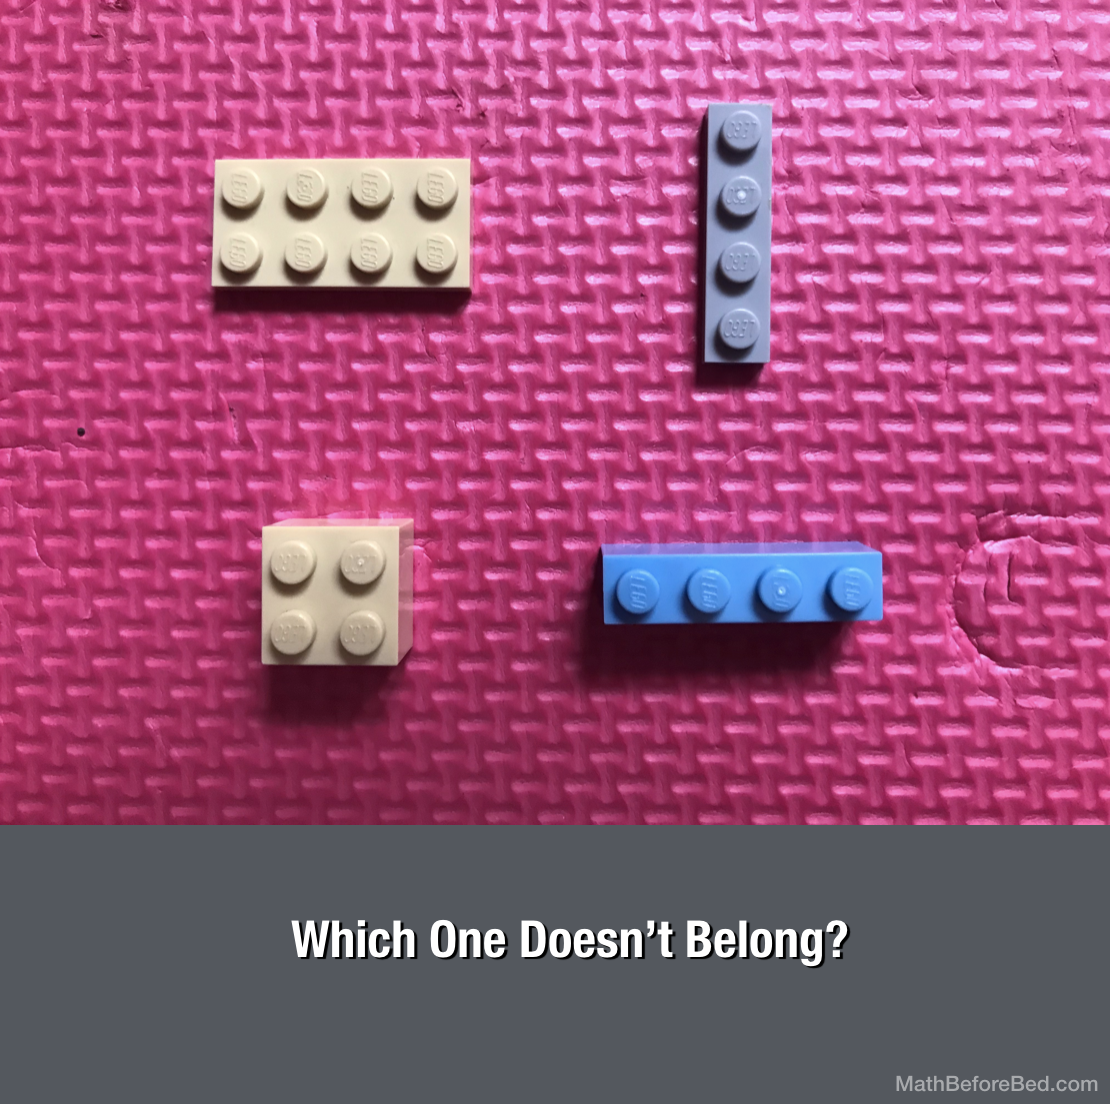 Which Lego Piece Doesn't Belong?